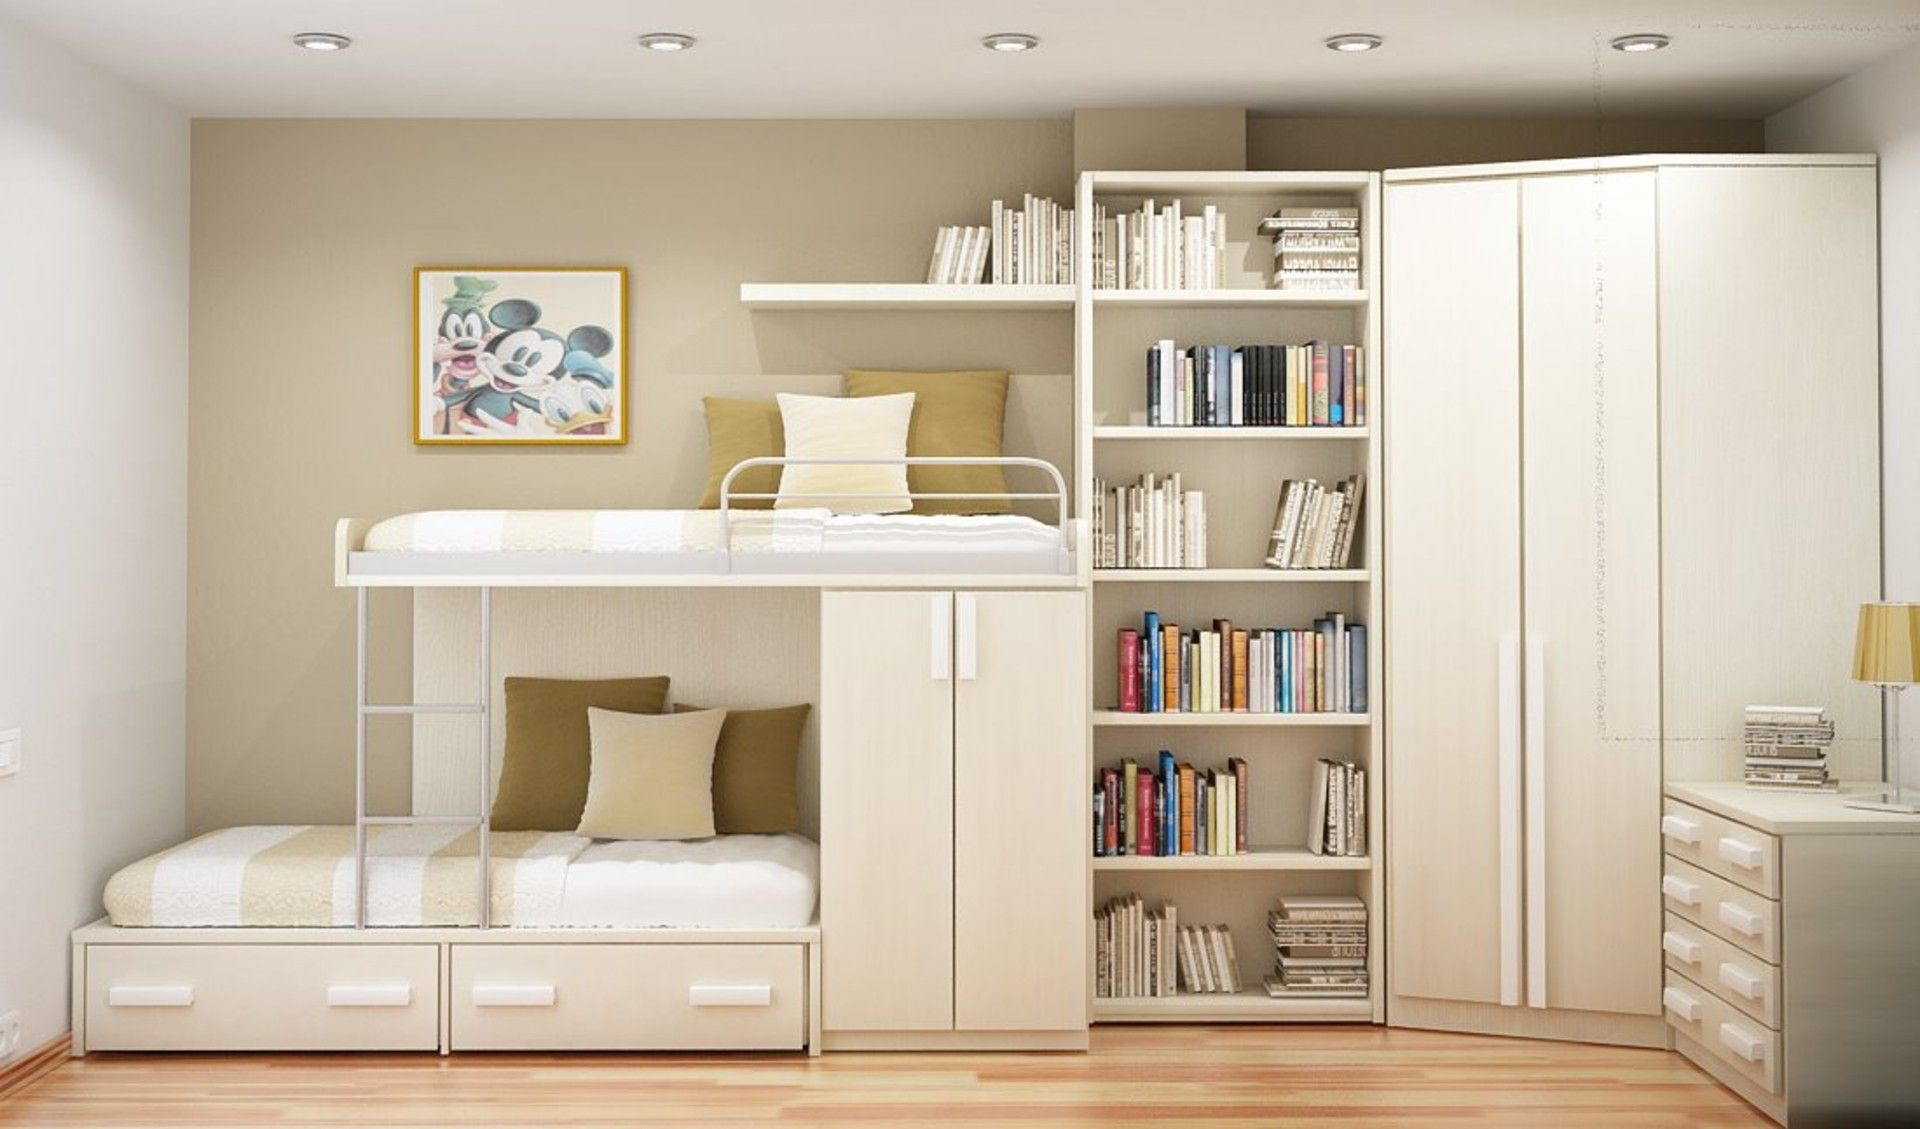 Wall Mount Cabinet Delightful Modern Kids Bedroom Mirrored Bathroom Vanity With Creamy Wall Painted An Small Kids Room Small Bedroom Interior Small Room Design